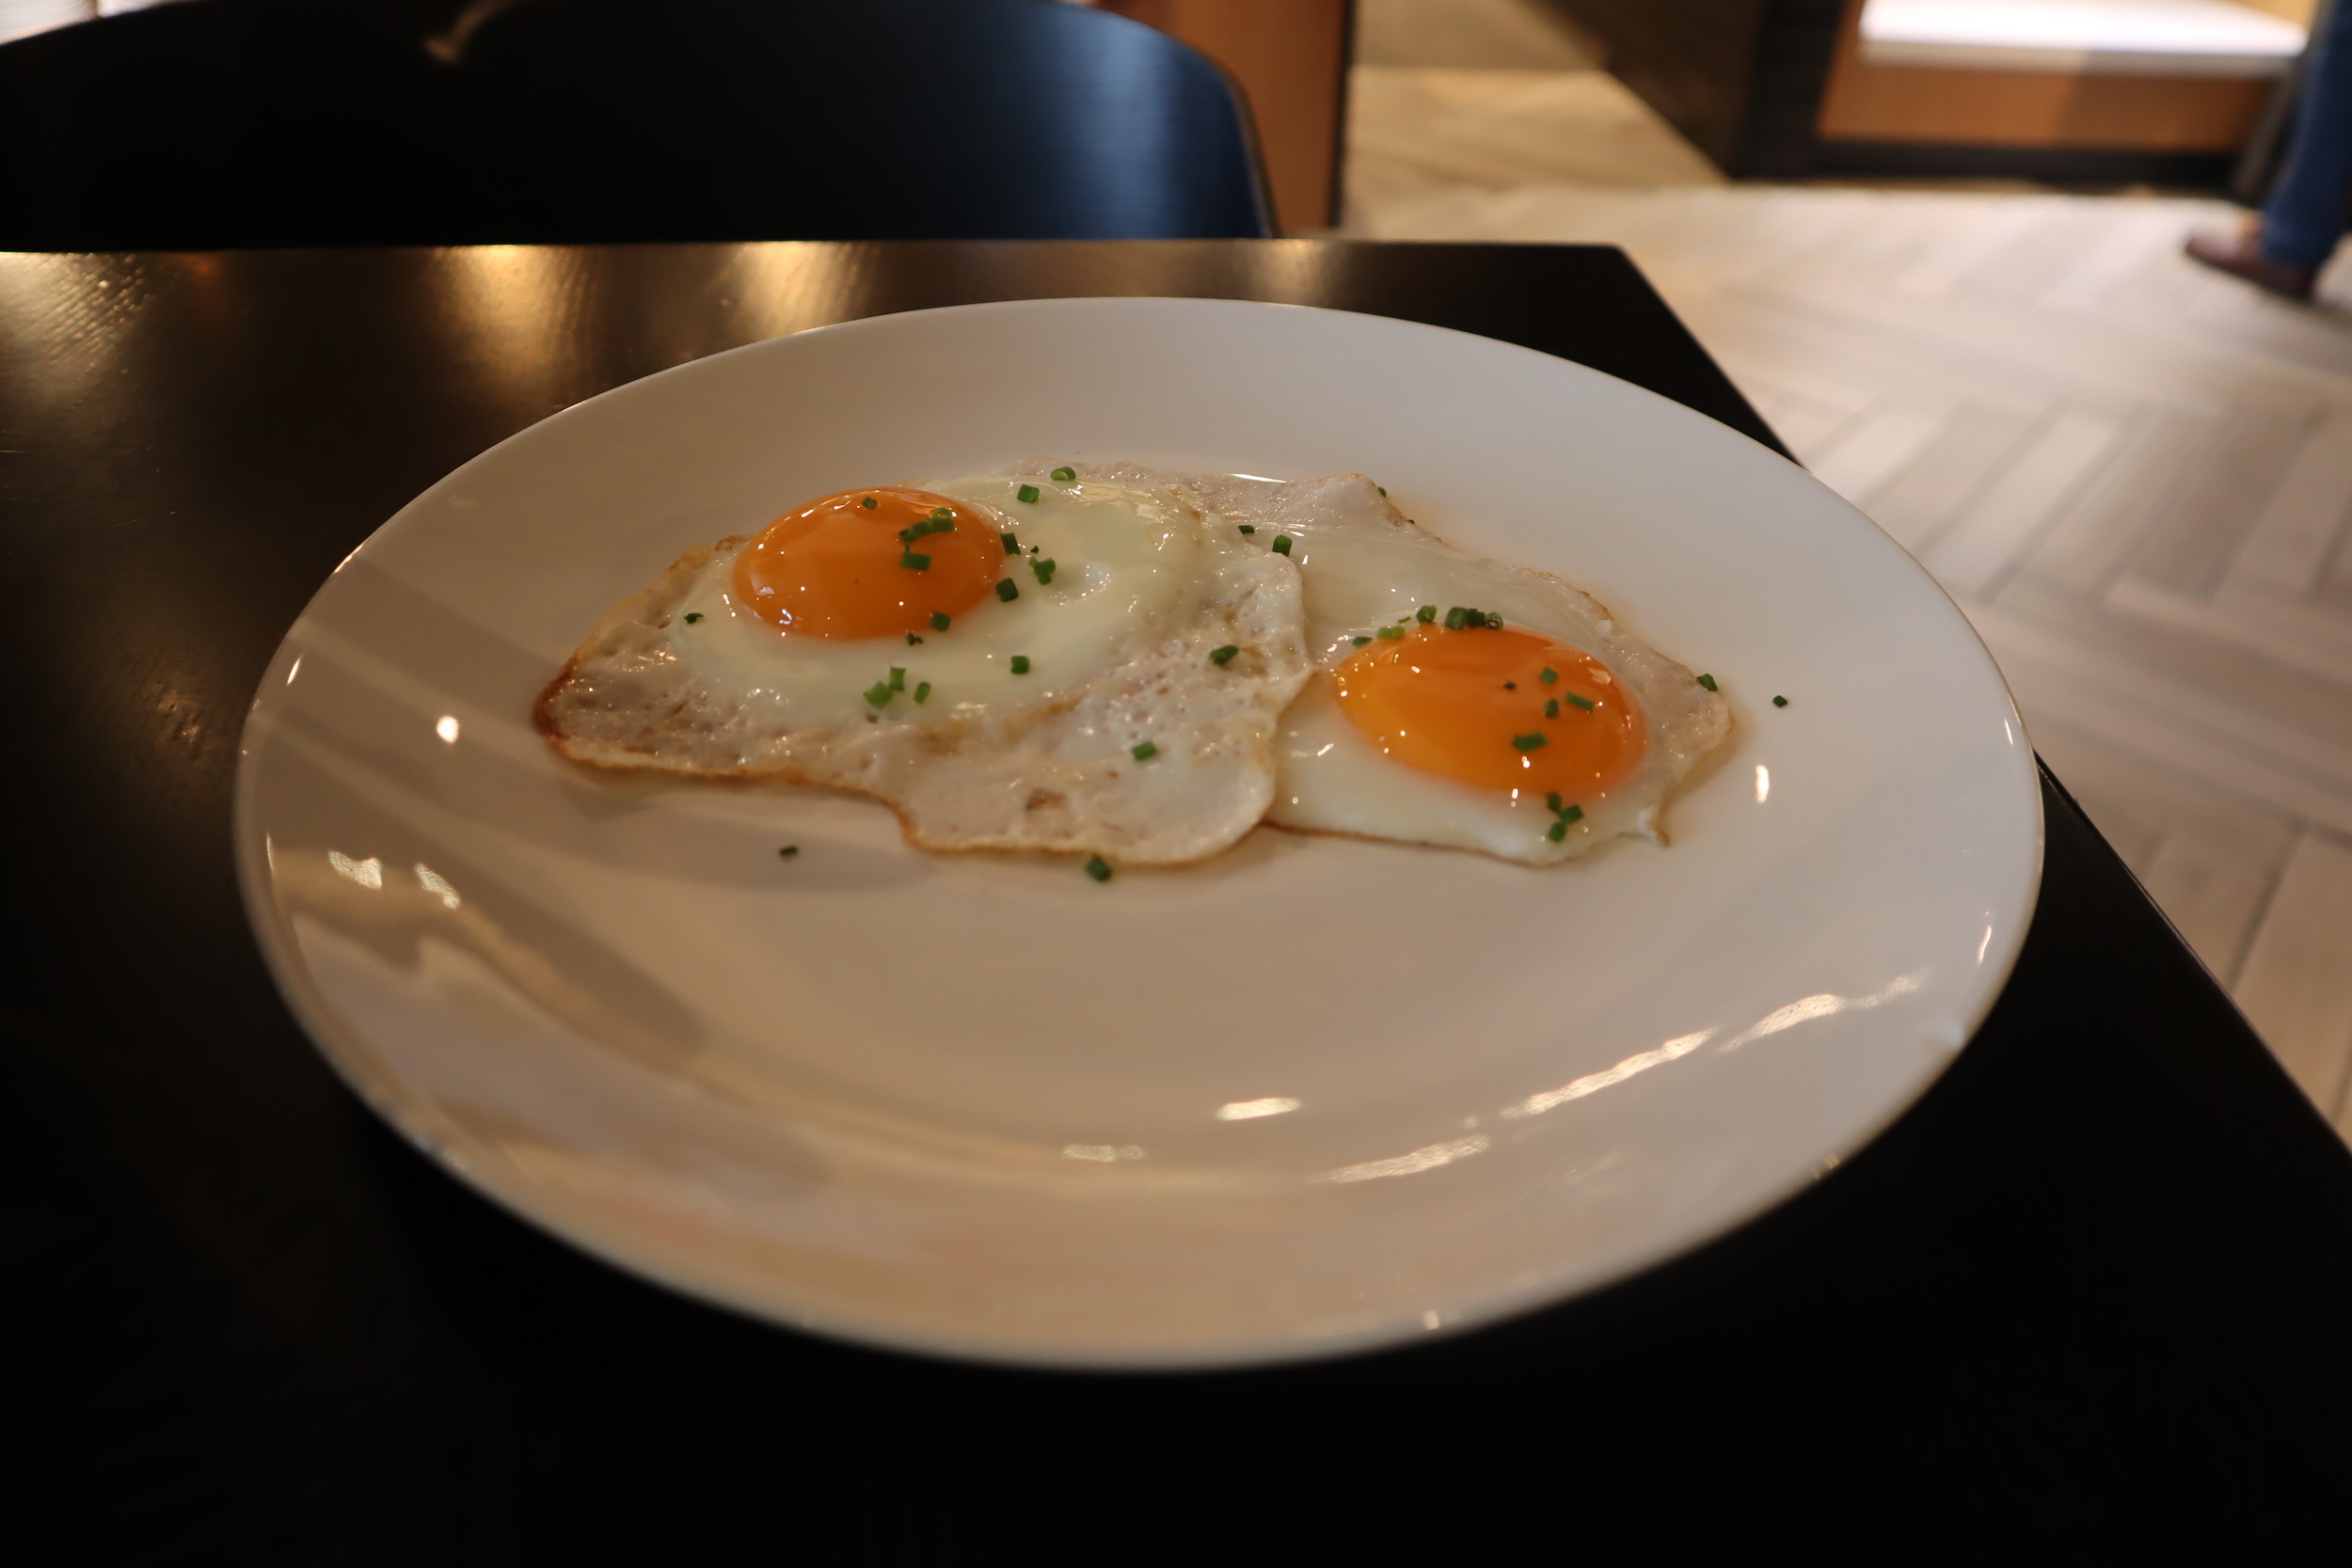 Four Points by Sheraton Auckland – Made-to-order eggs